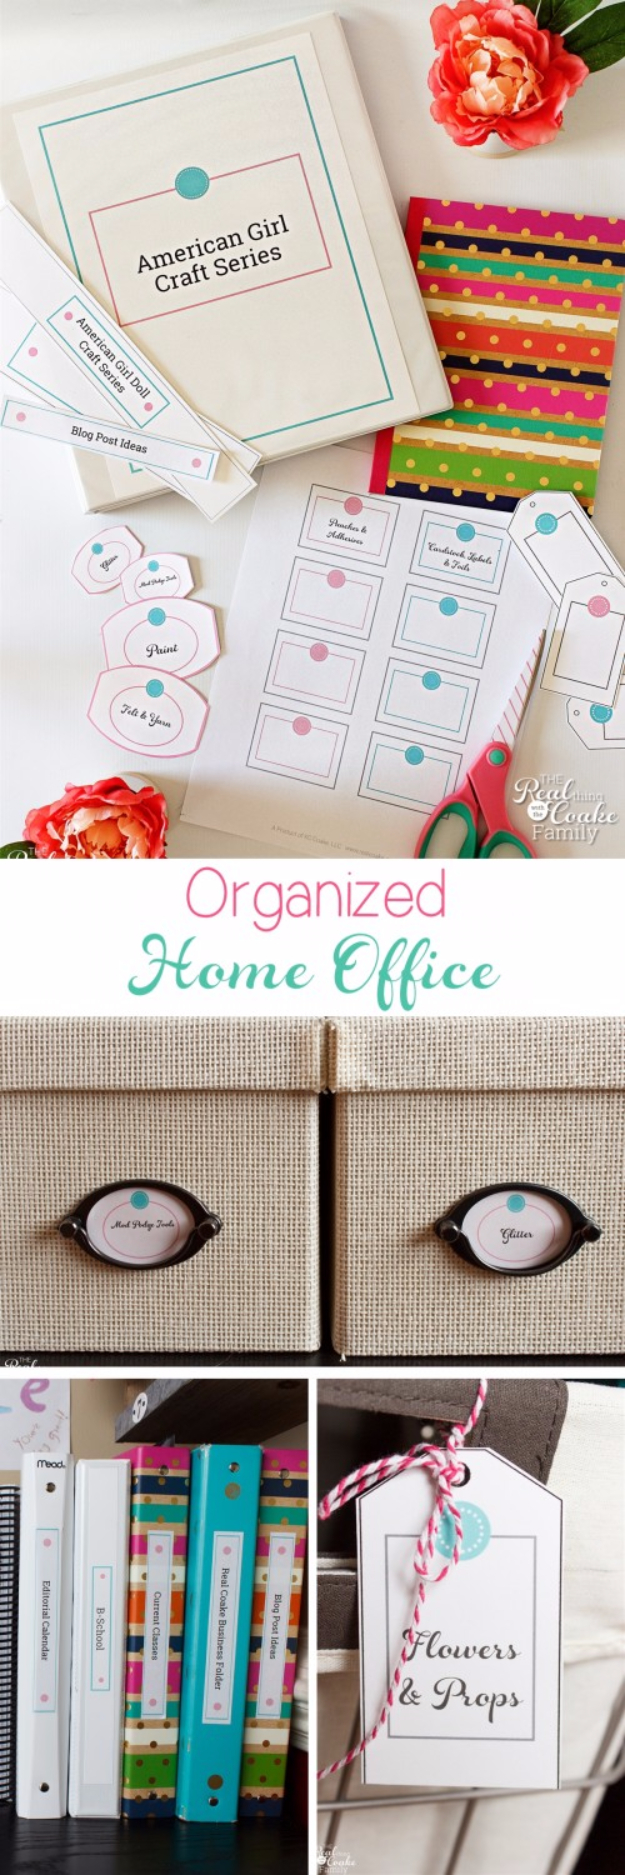 31 Best DIY Organizing Ideas for the New Year